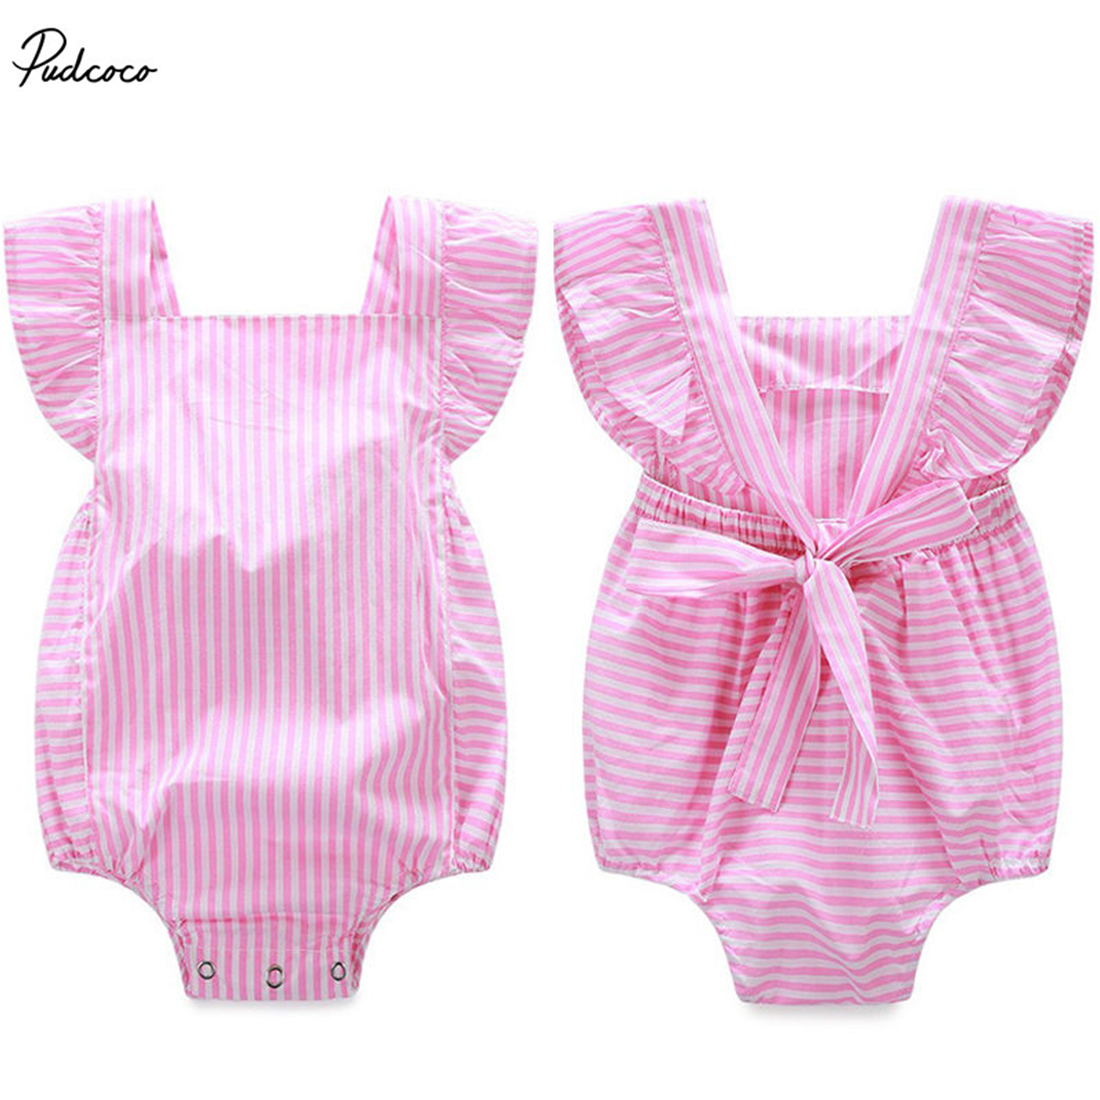 Children Toddler Baby Girls Striped   Romper   Sleeveless Backless Bandage Jumpsuit 2017 New Summer Outfits Sunsuit One-pieces